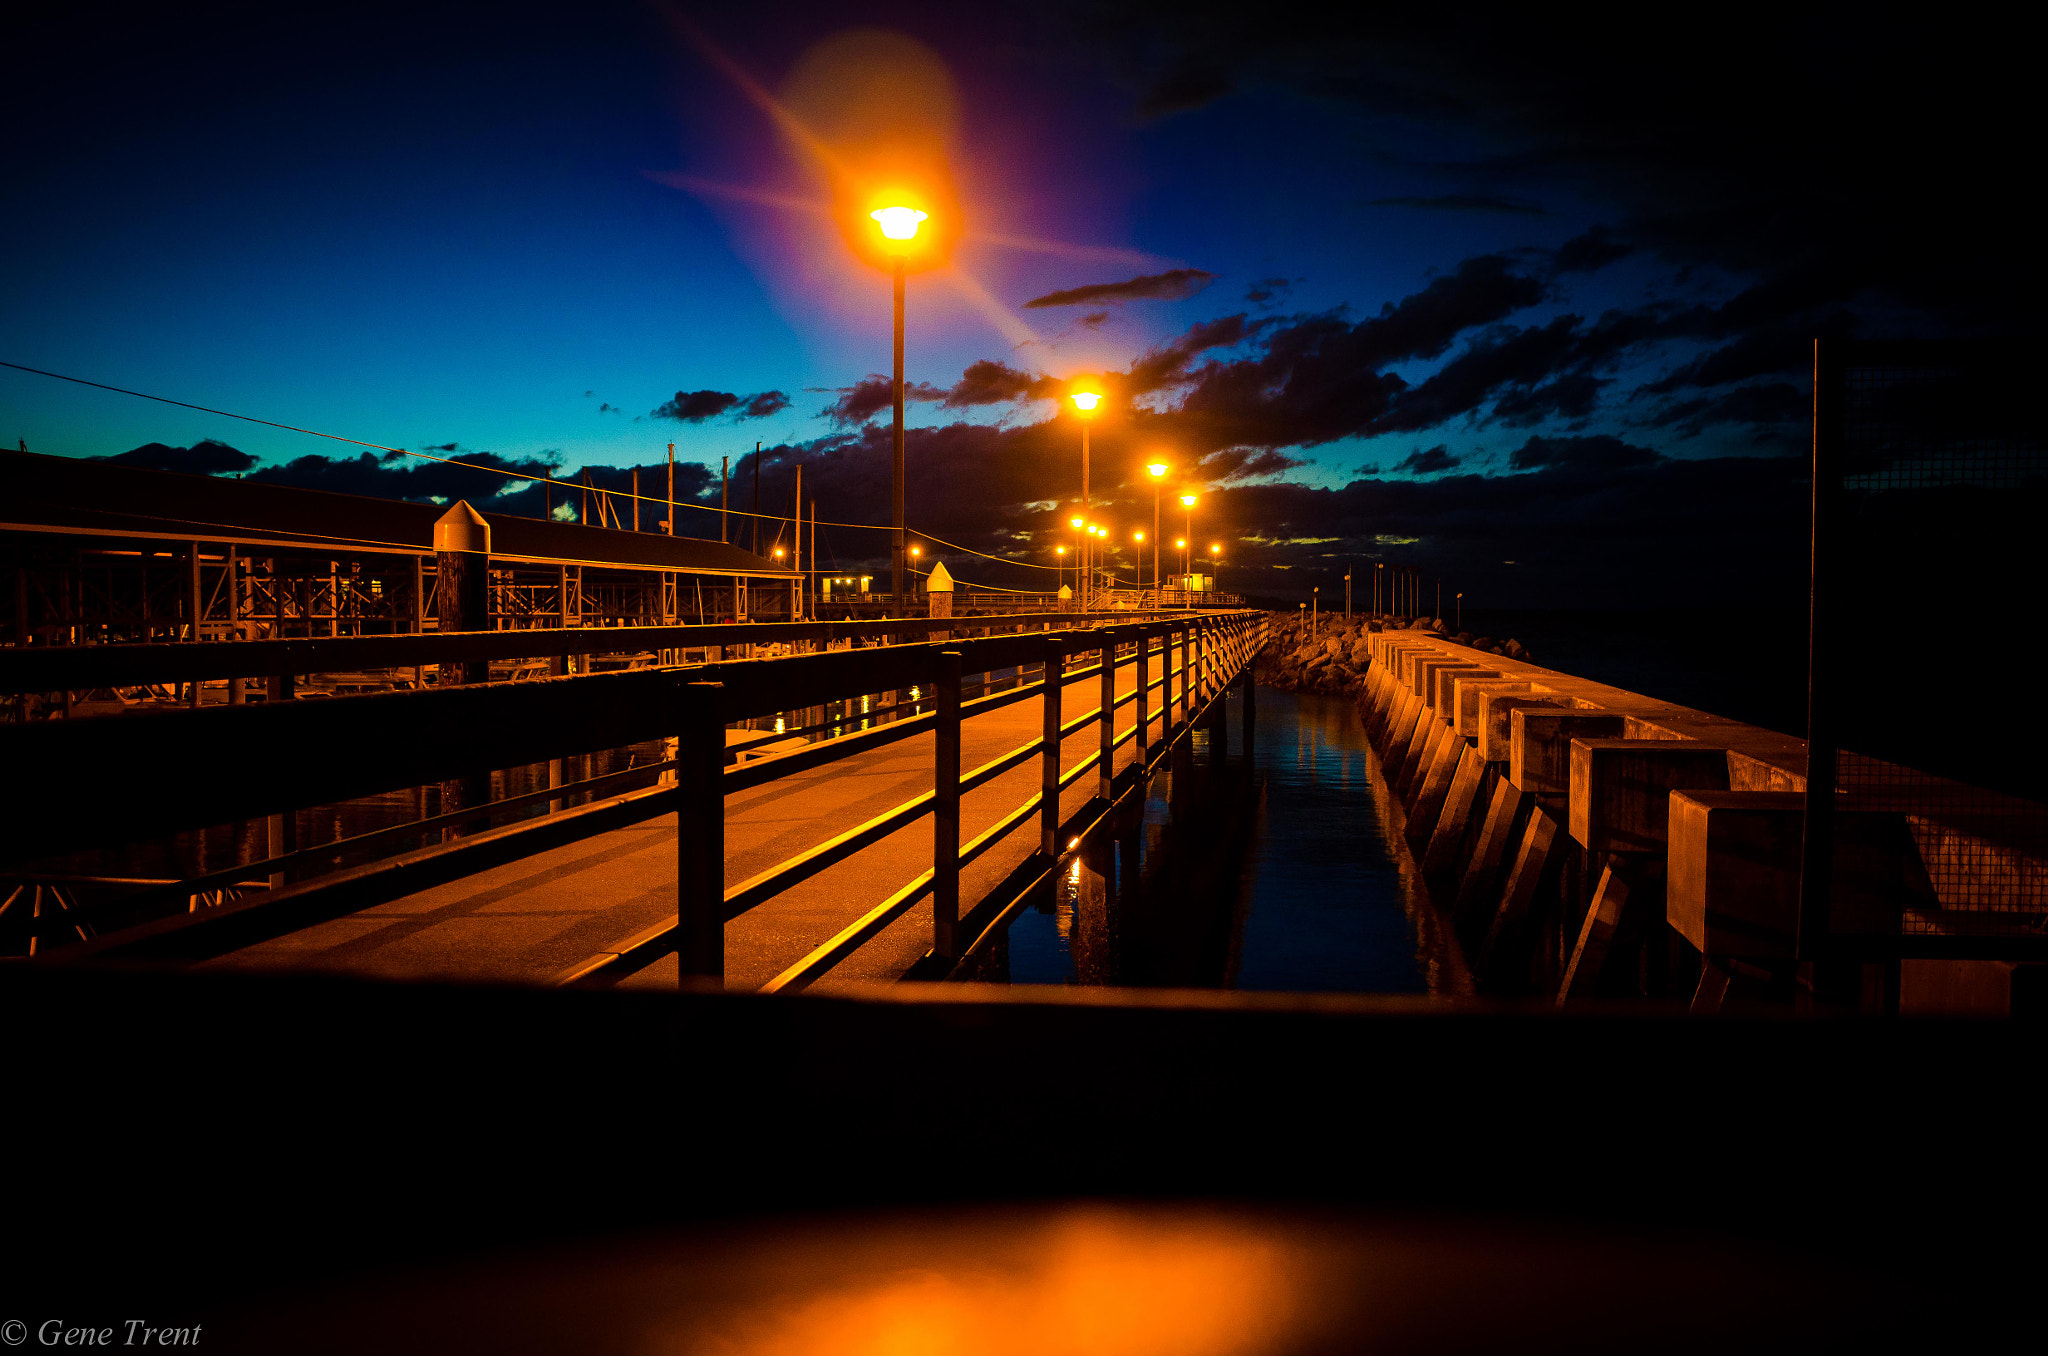 Photograph Pier at night by Gene Trent on 500px